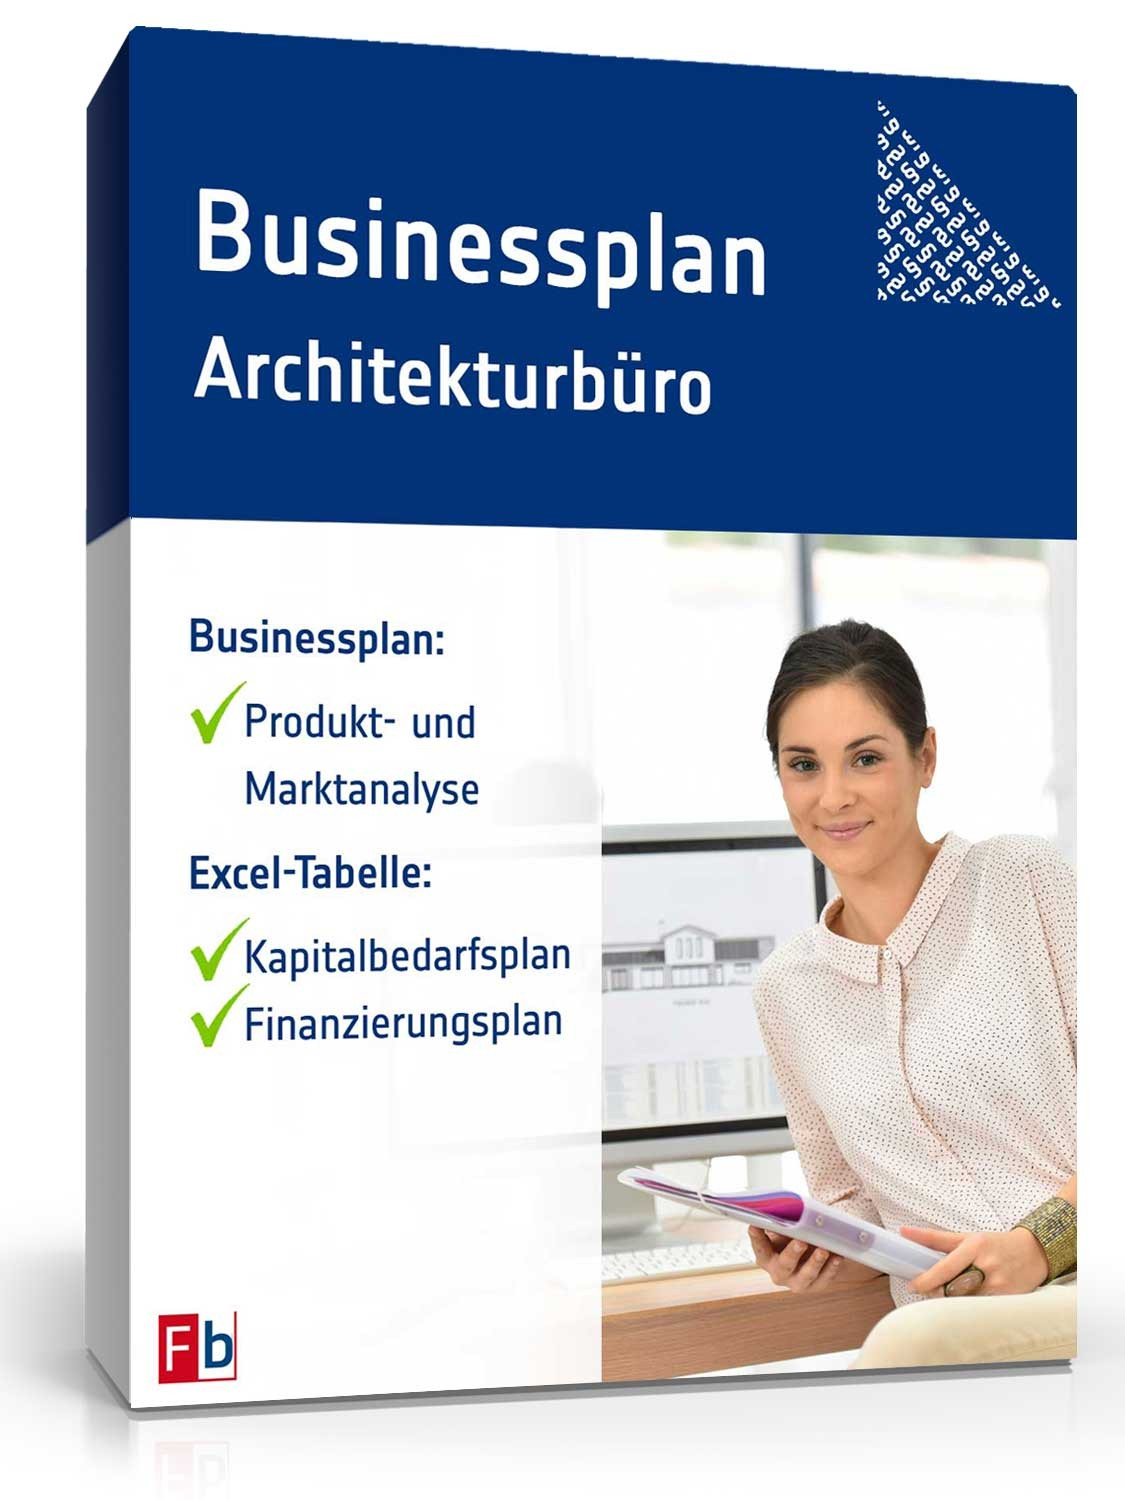 What are the seven parts of a business plan